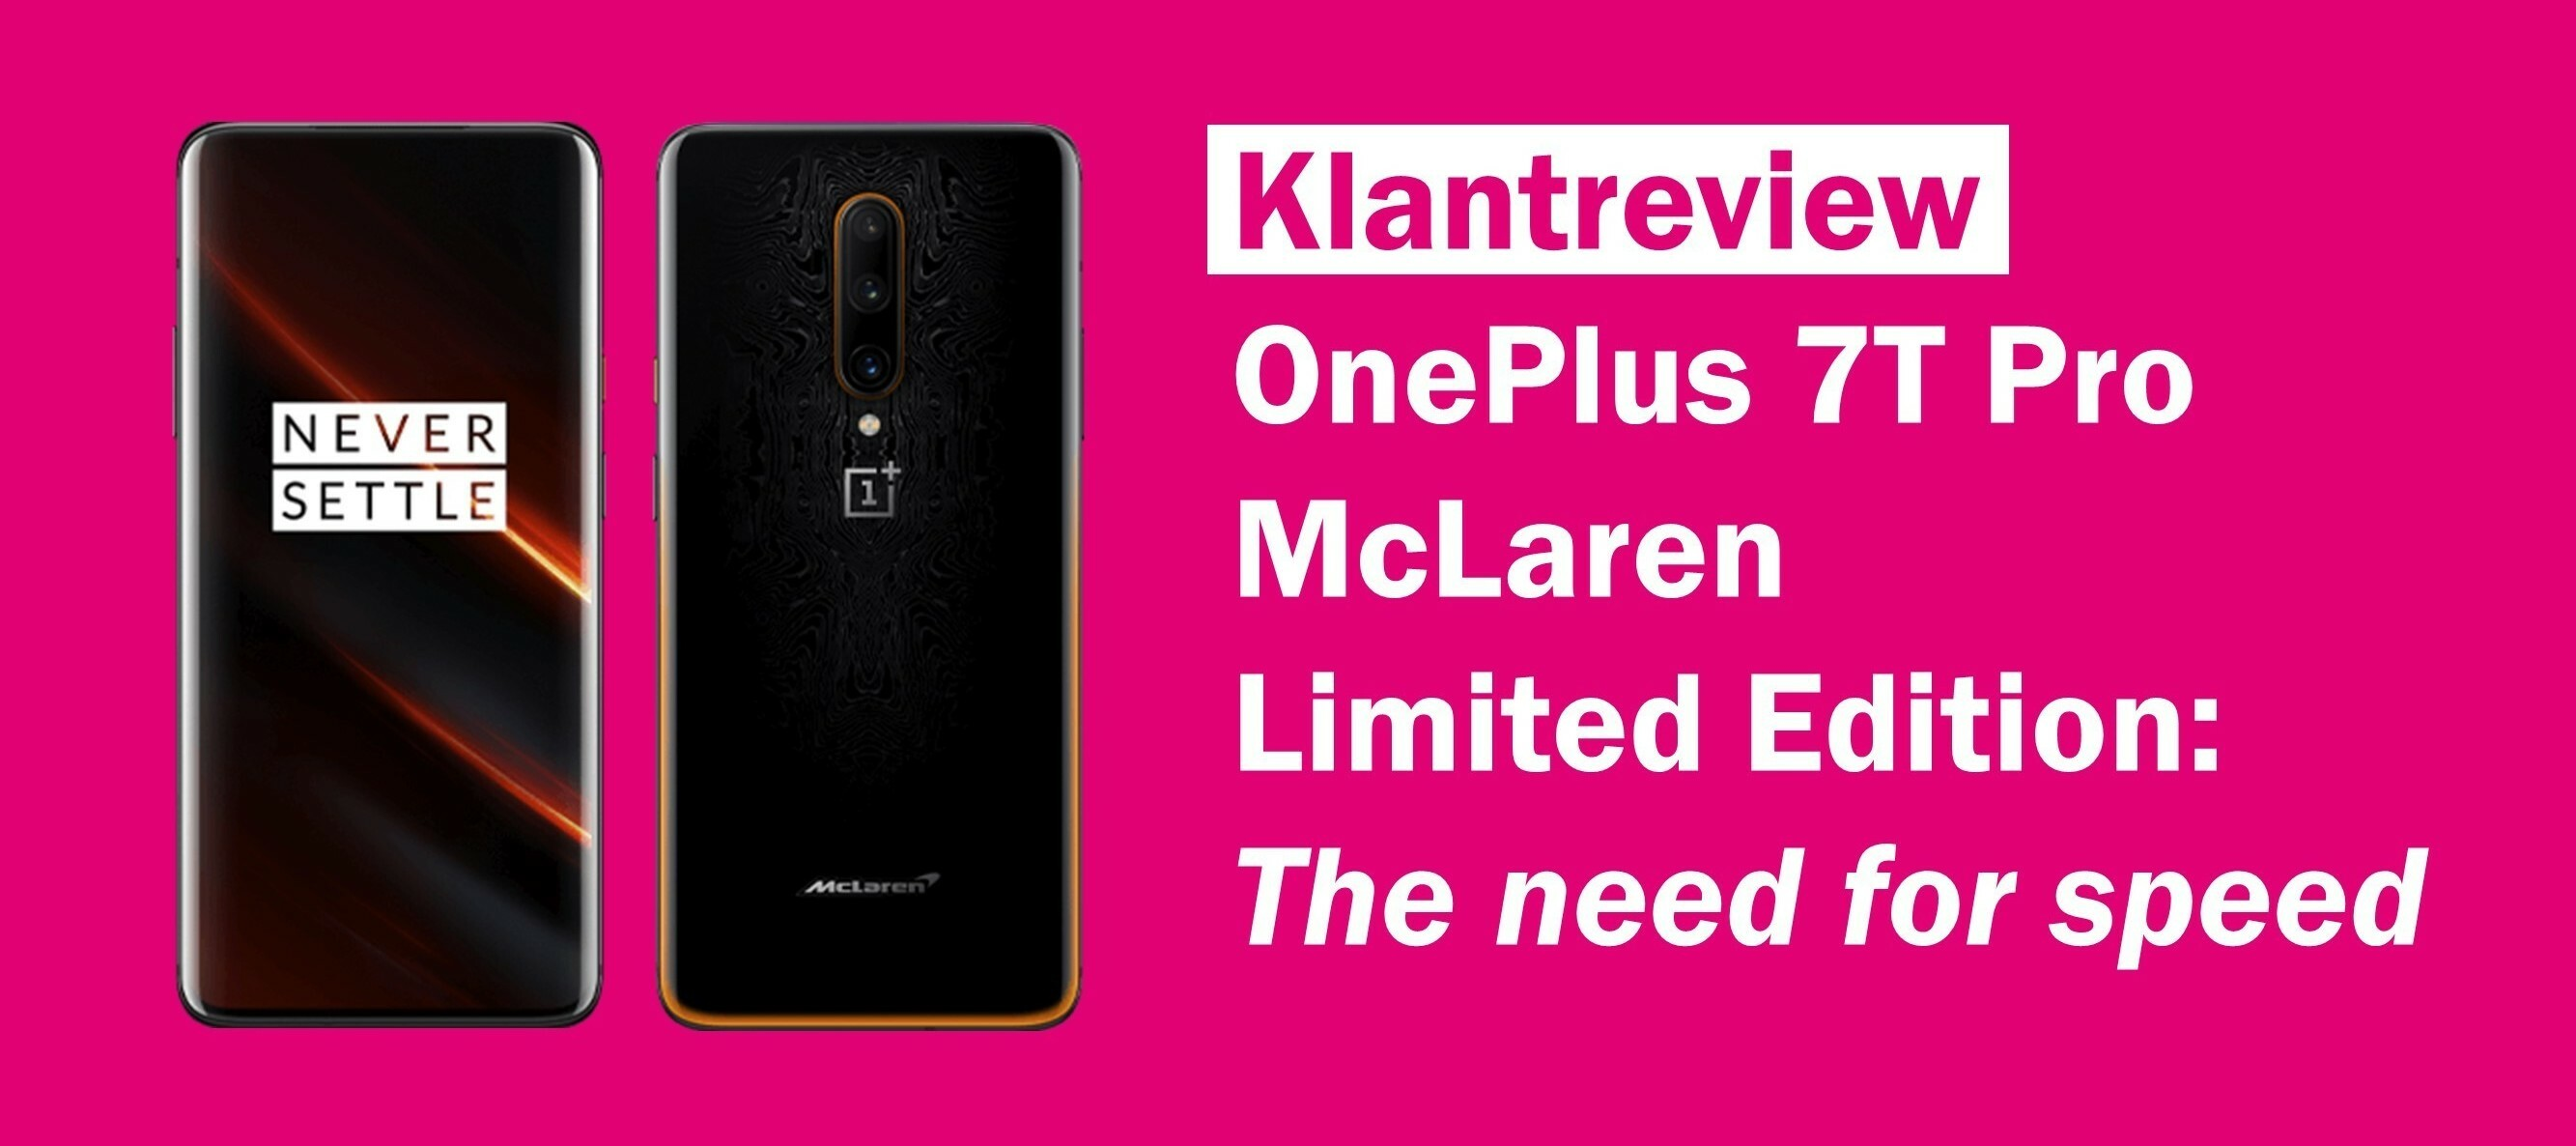 [REVIEW] OnePlus 7T Pro McLaren Limited Edition: The need for speed